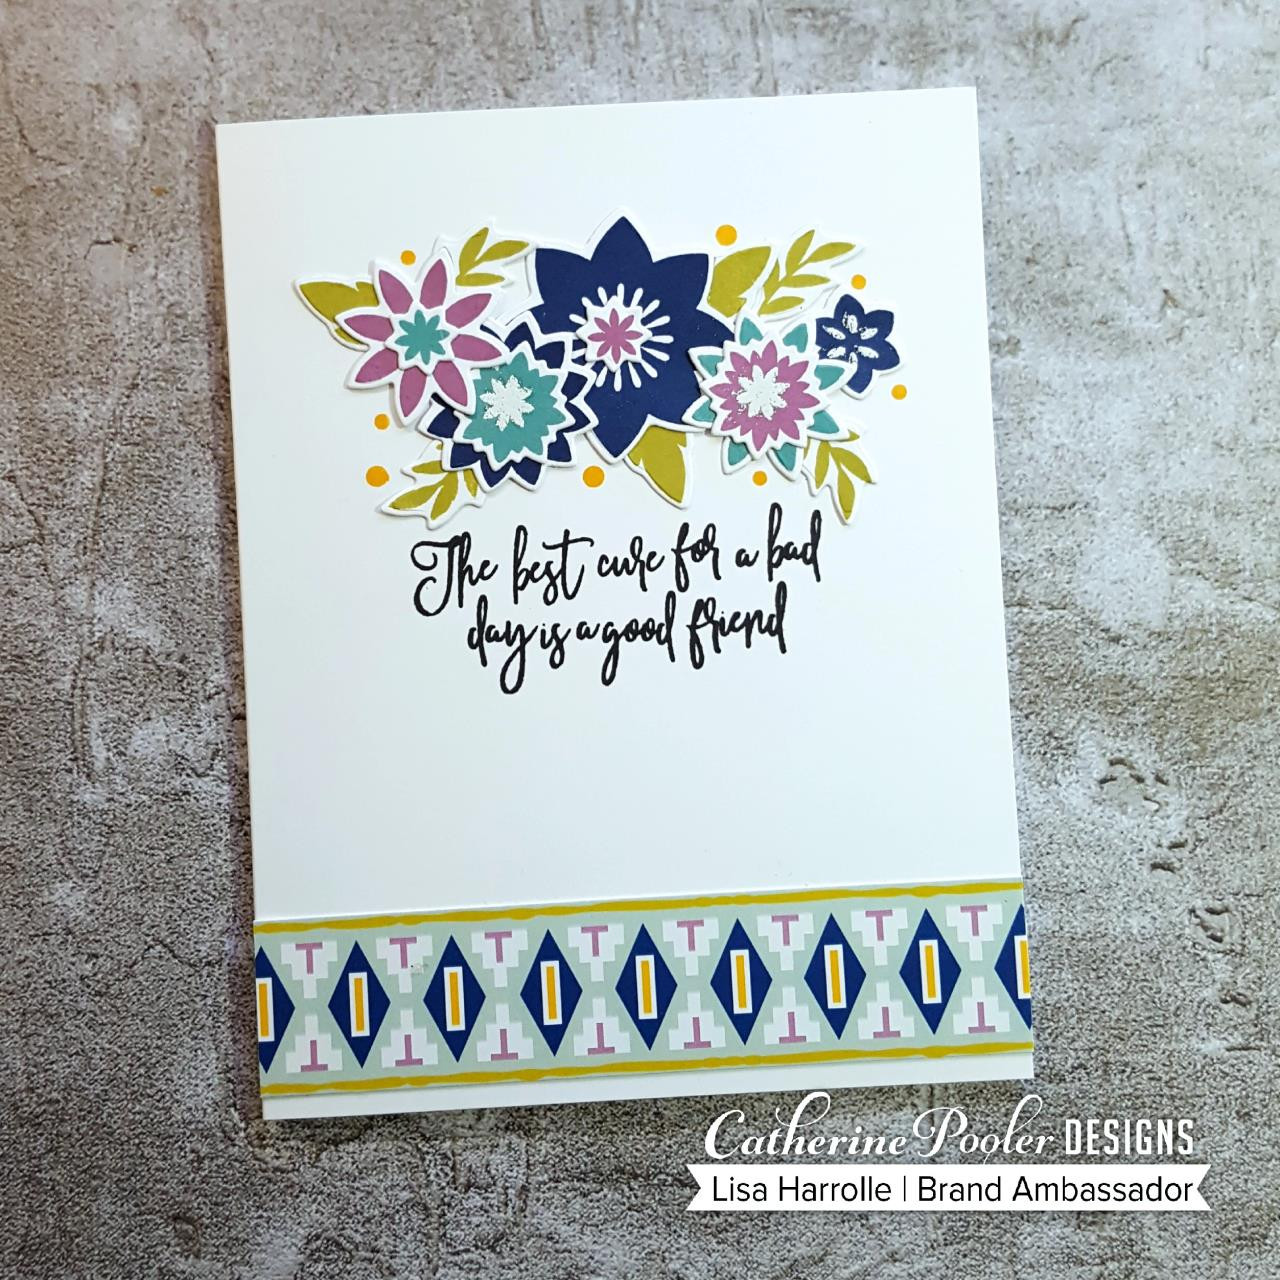 My Kind Floral, Catherine Pooler Clear Stamps - 819447023714